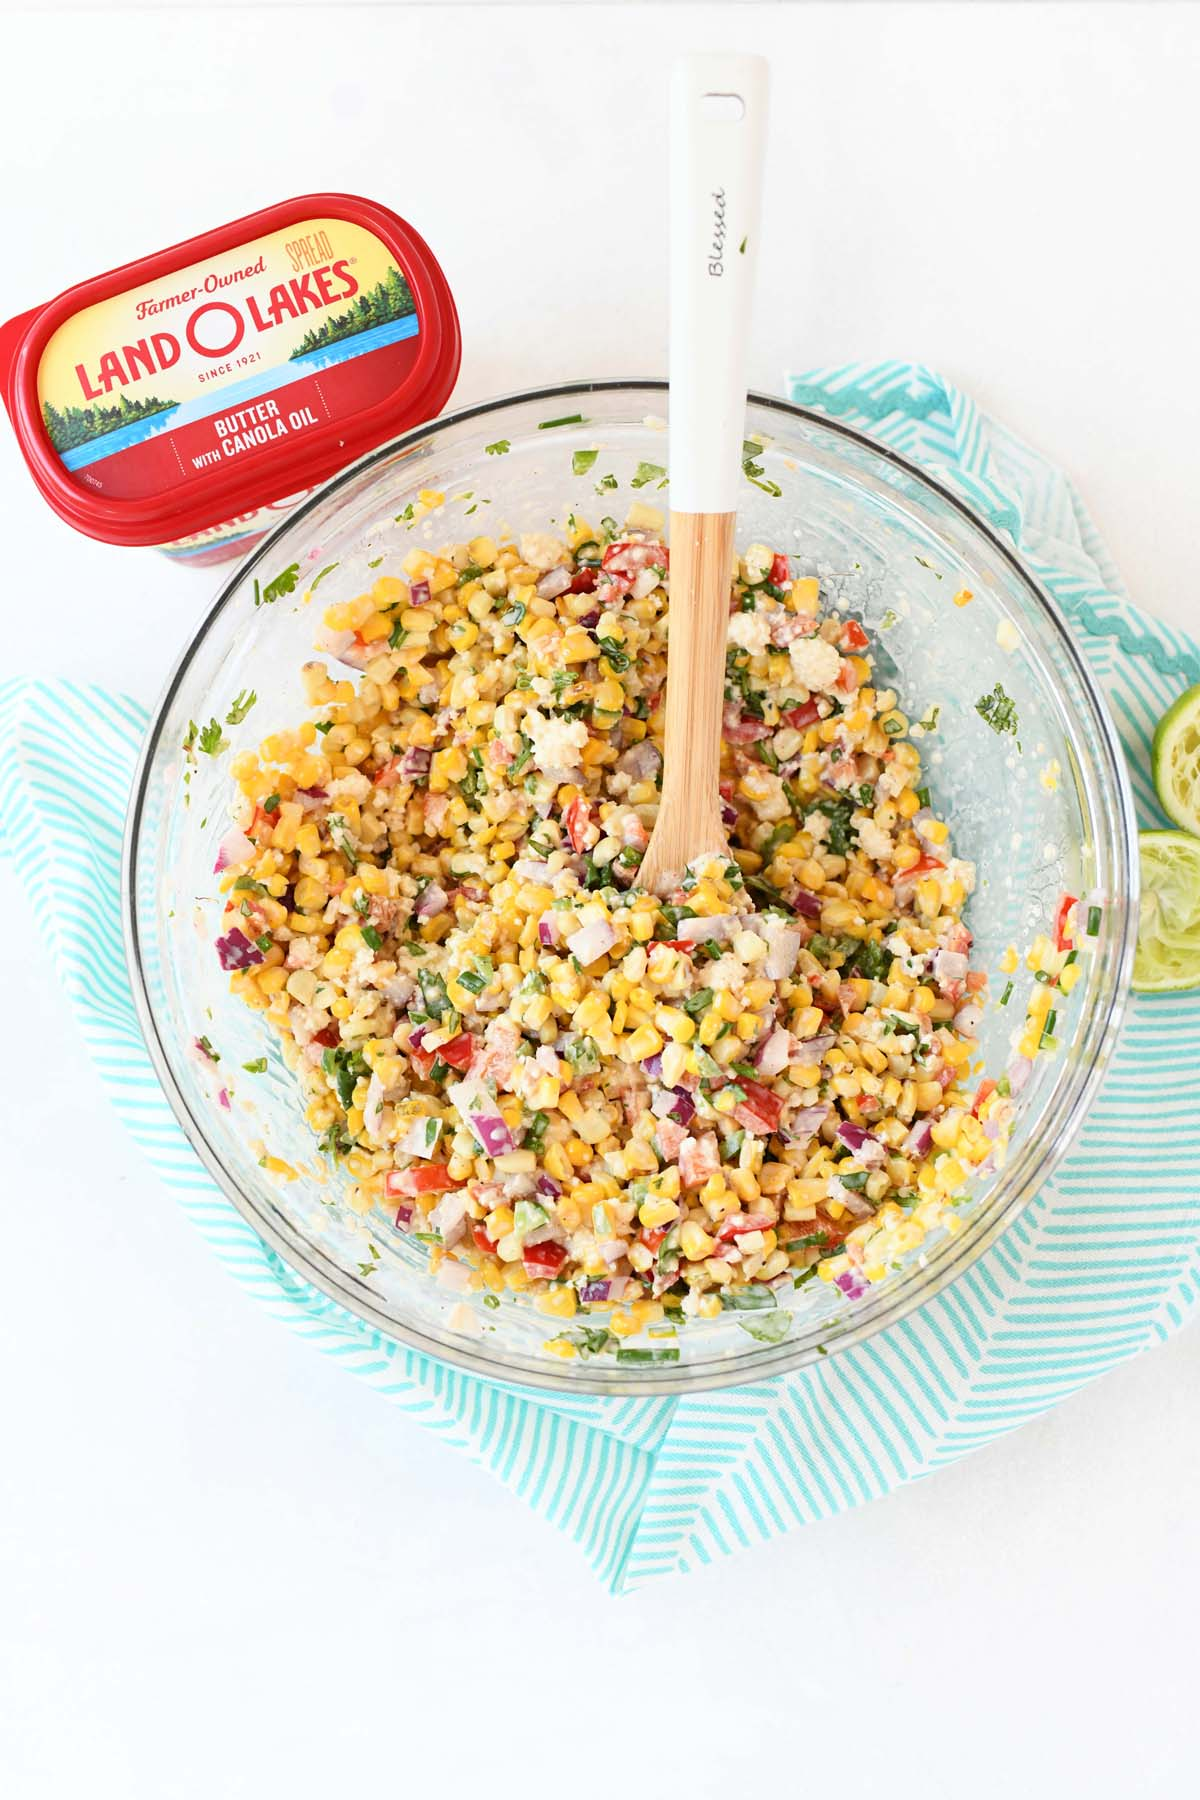 Mexican Street Corn Salad near butter in a glass bowl with a spoon.